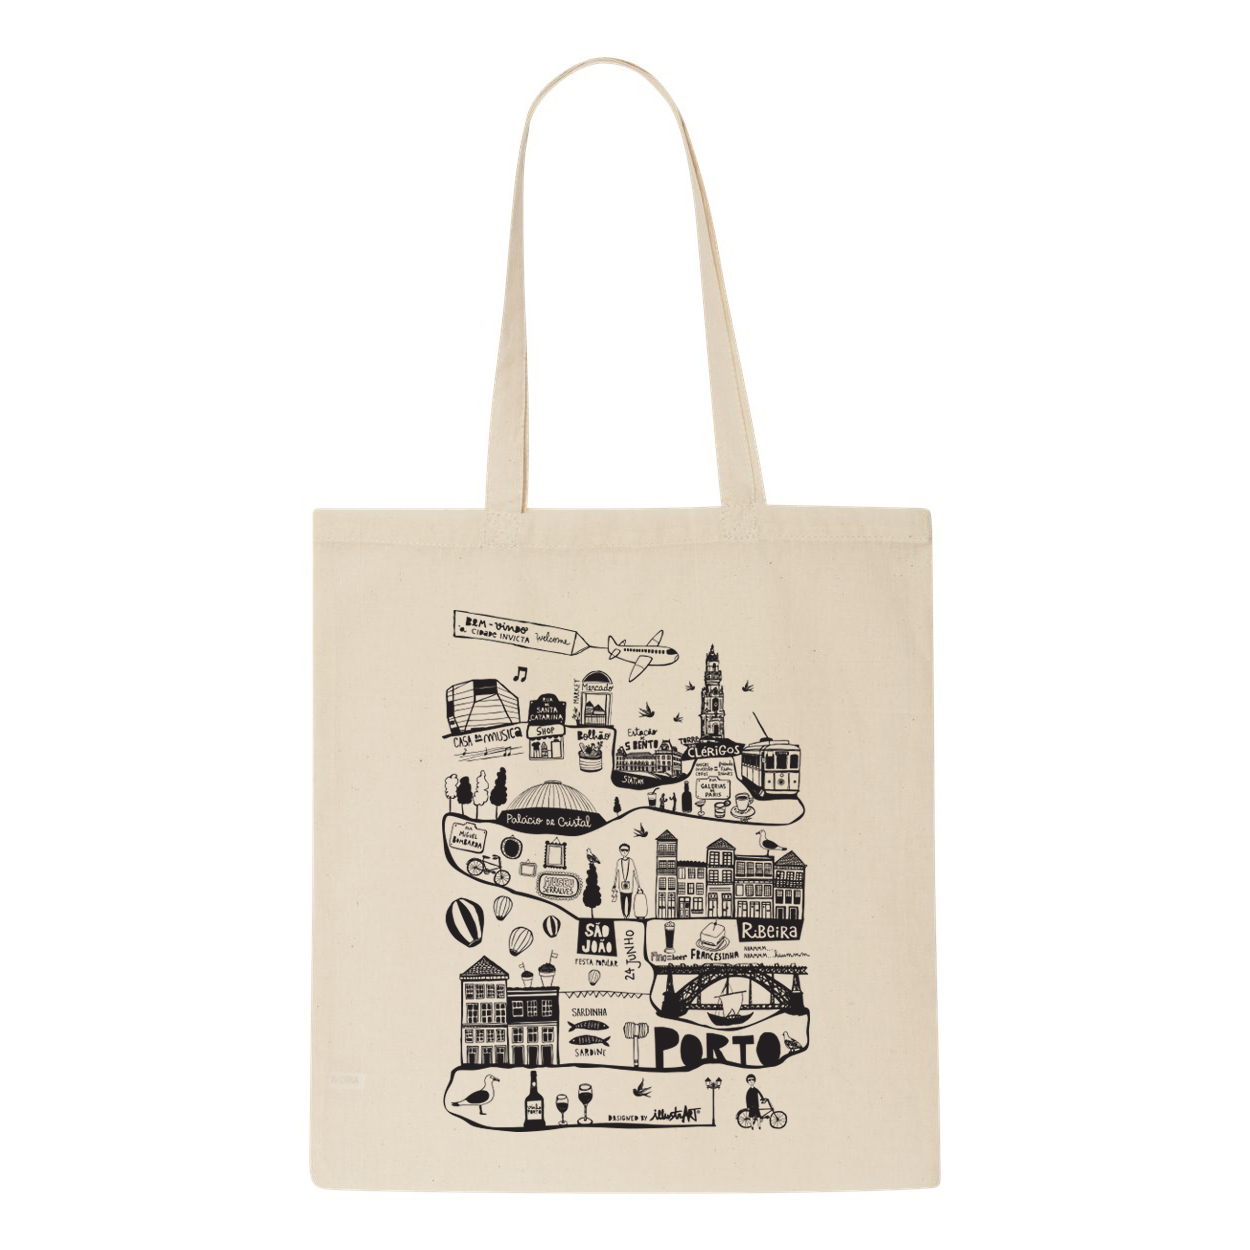 tote bag made in porto